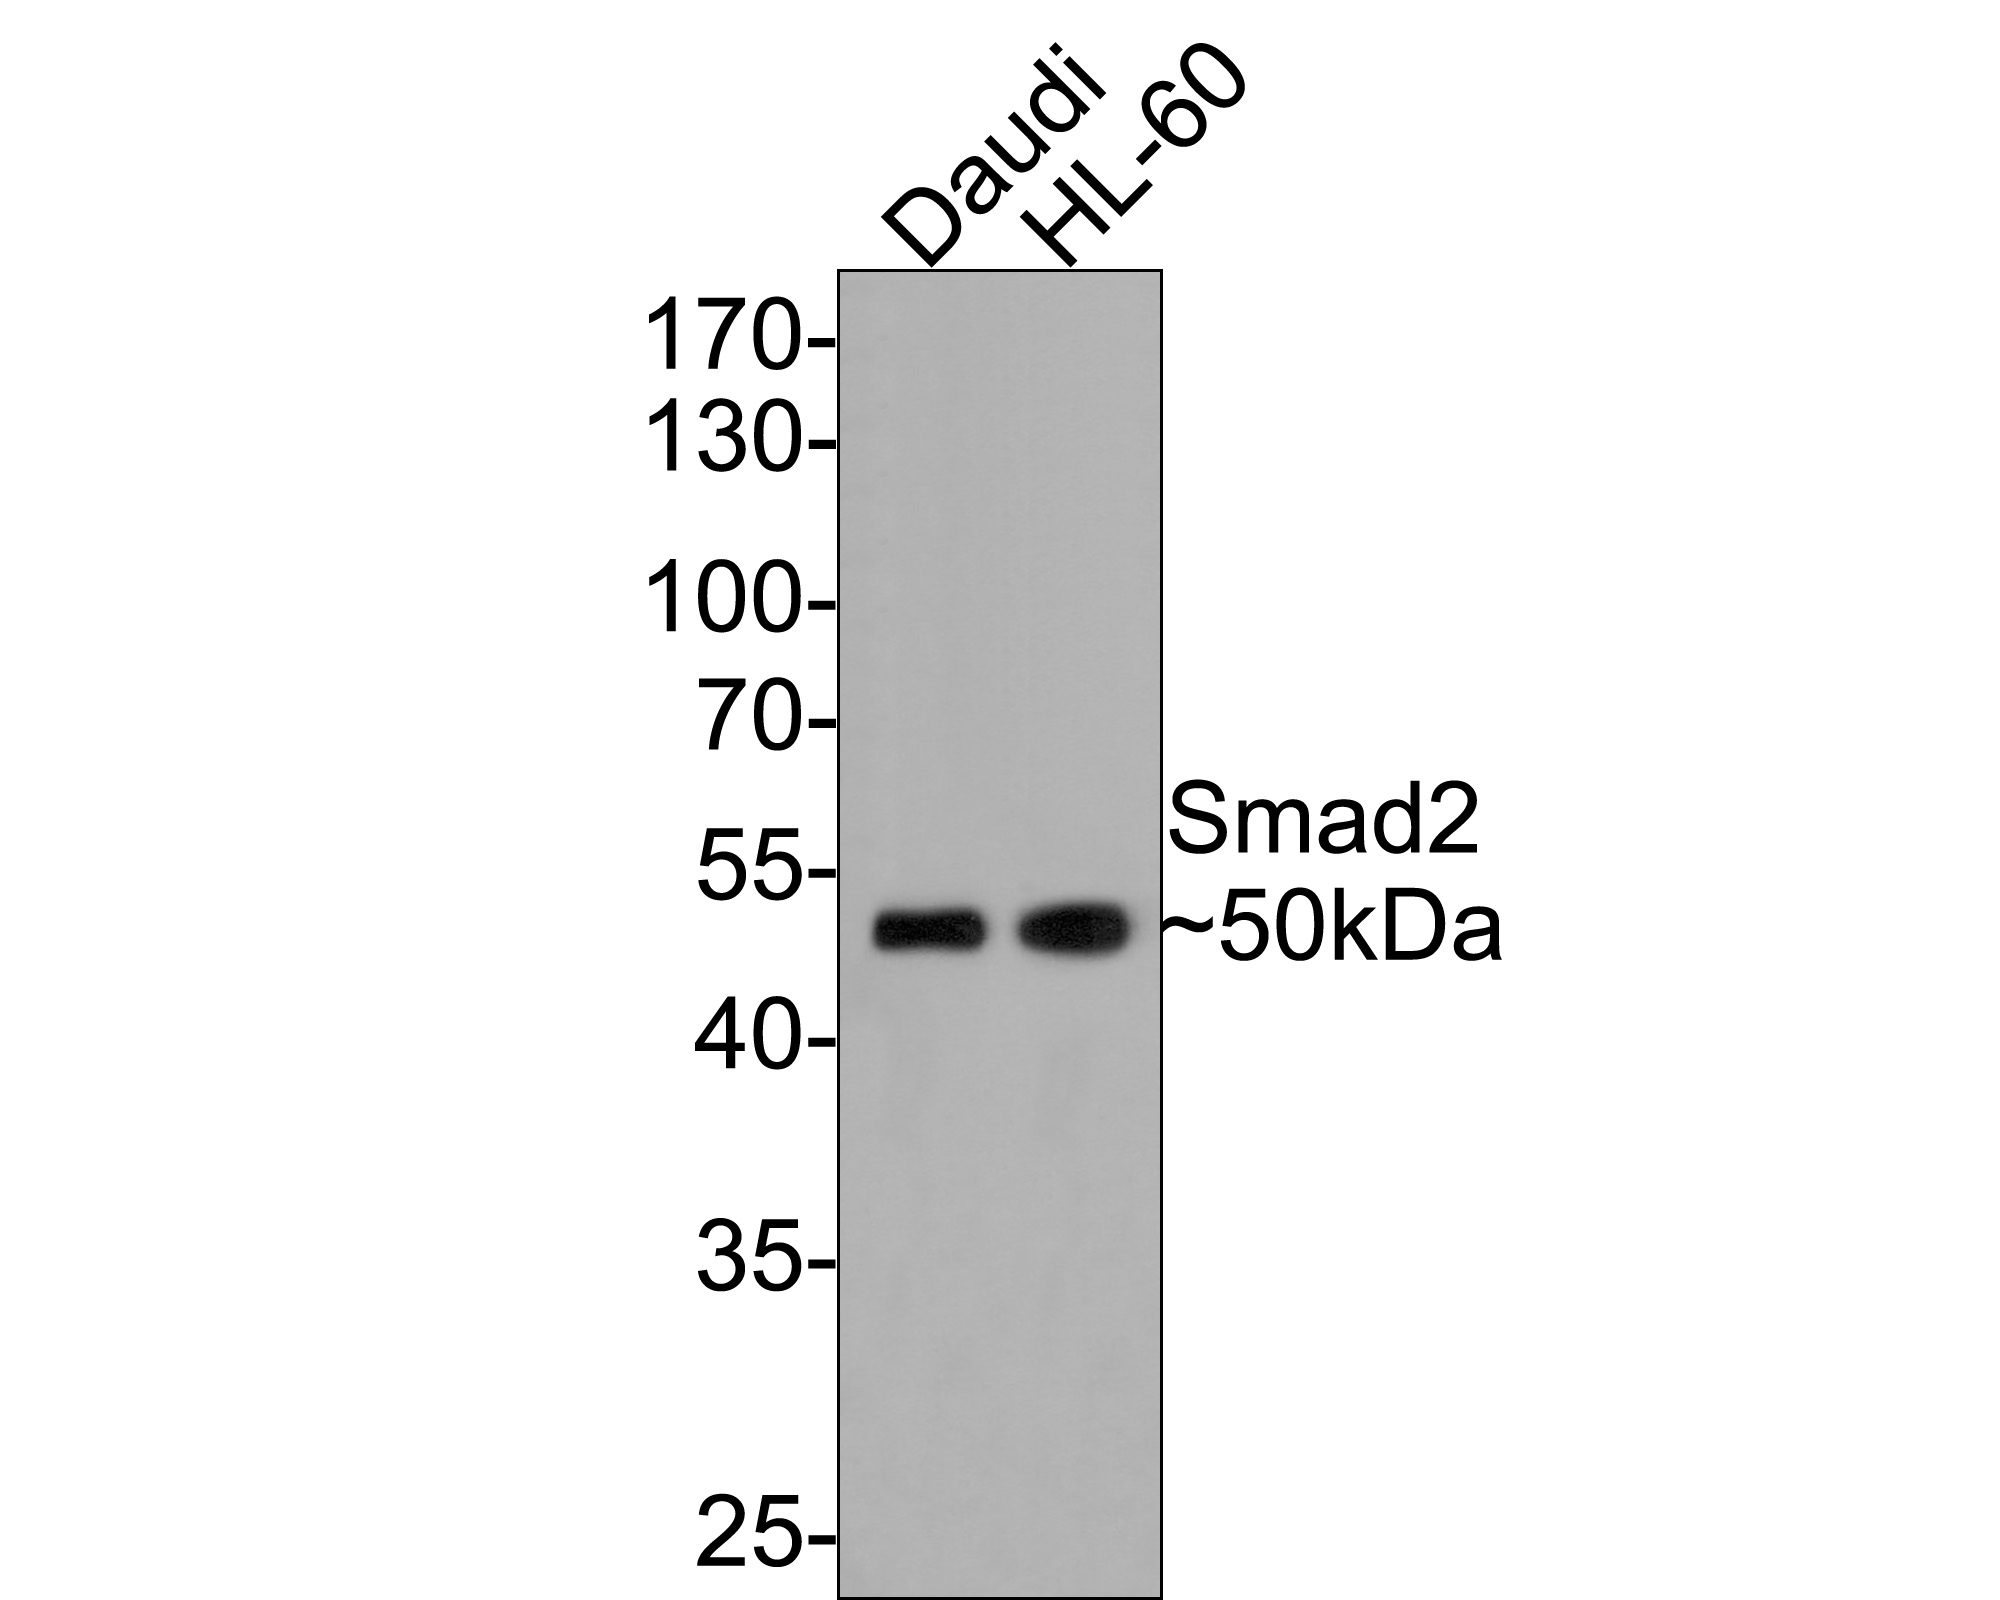 Western blot analysis of Smad2 on different lysates. Proteins were transferred to a PVDF membrane and blocked with 5% BSA in PBS for 1 hour at room temperature. The primary antibody (ET1604-22, 1/500) was used in 5% BSA at room temperature for 2 hours. Goat Anti-Rabbit IgG - HRP Secondary Antibody (HA1001) at 1:5,000 dilution was used for 1 hour at room temperature. Positive control:  Lane 1: Hela cell lysate Lane 2: A431 cell lysate Lane 3: PC-12 cell lysate